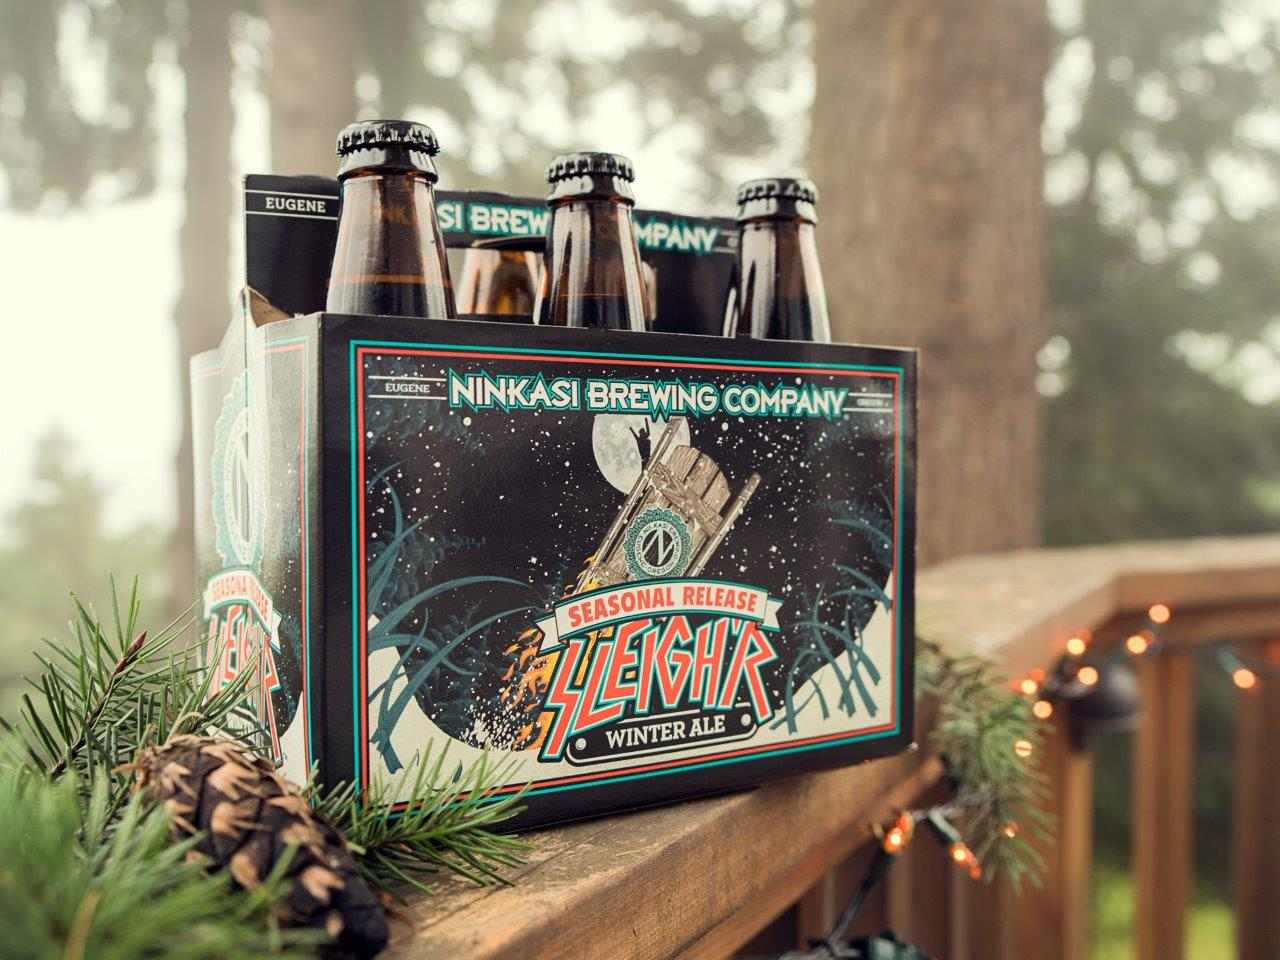 Ninkasi-Brewing_Sleighr_Winter-Ale